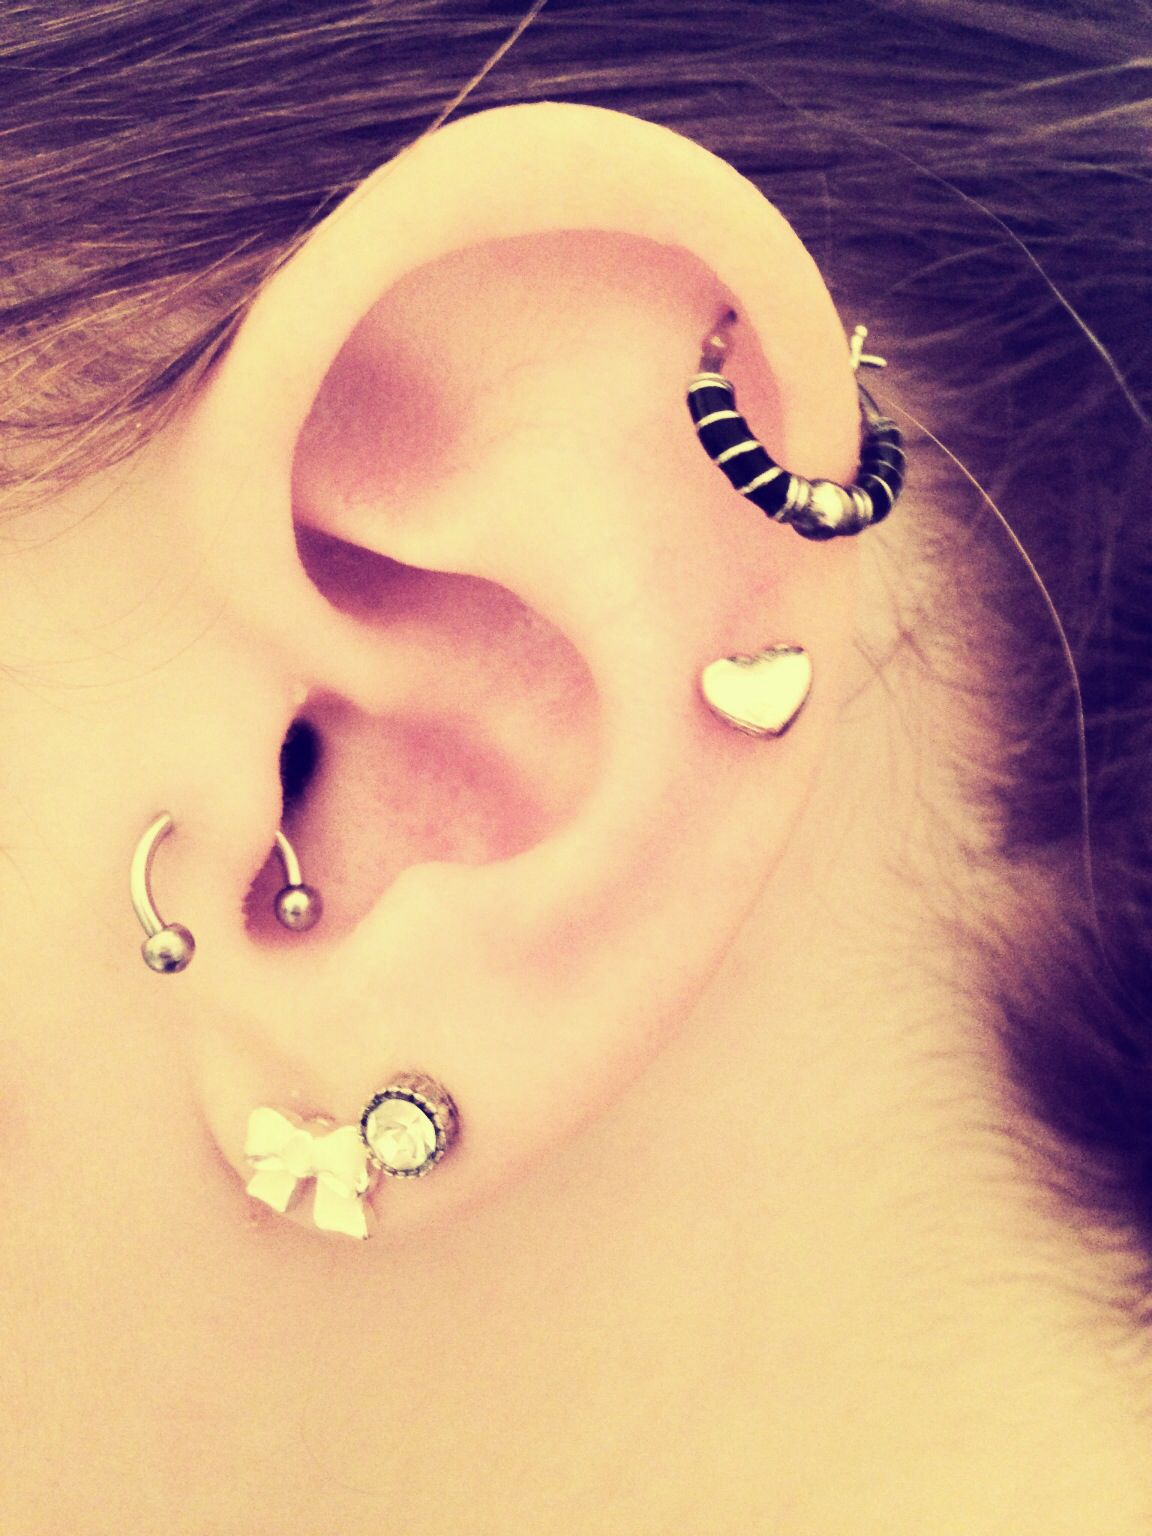 Body piercing map  New Piercing  Tragus  Love  clothes and hair things  Pinterest